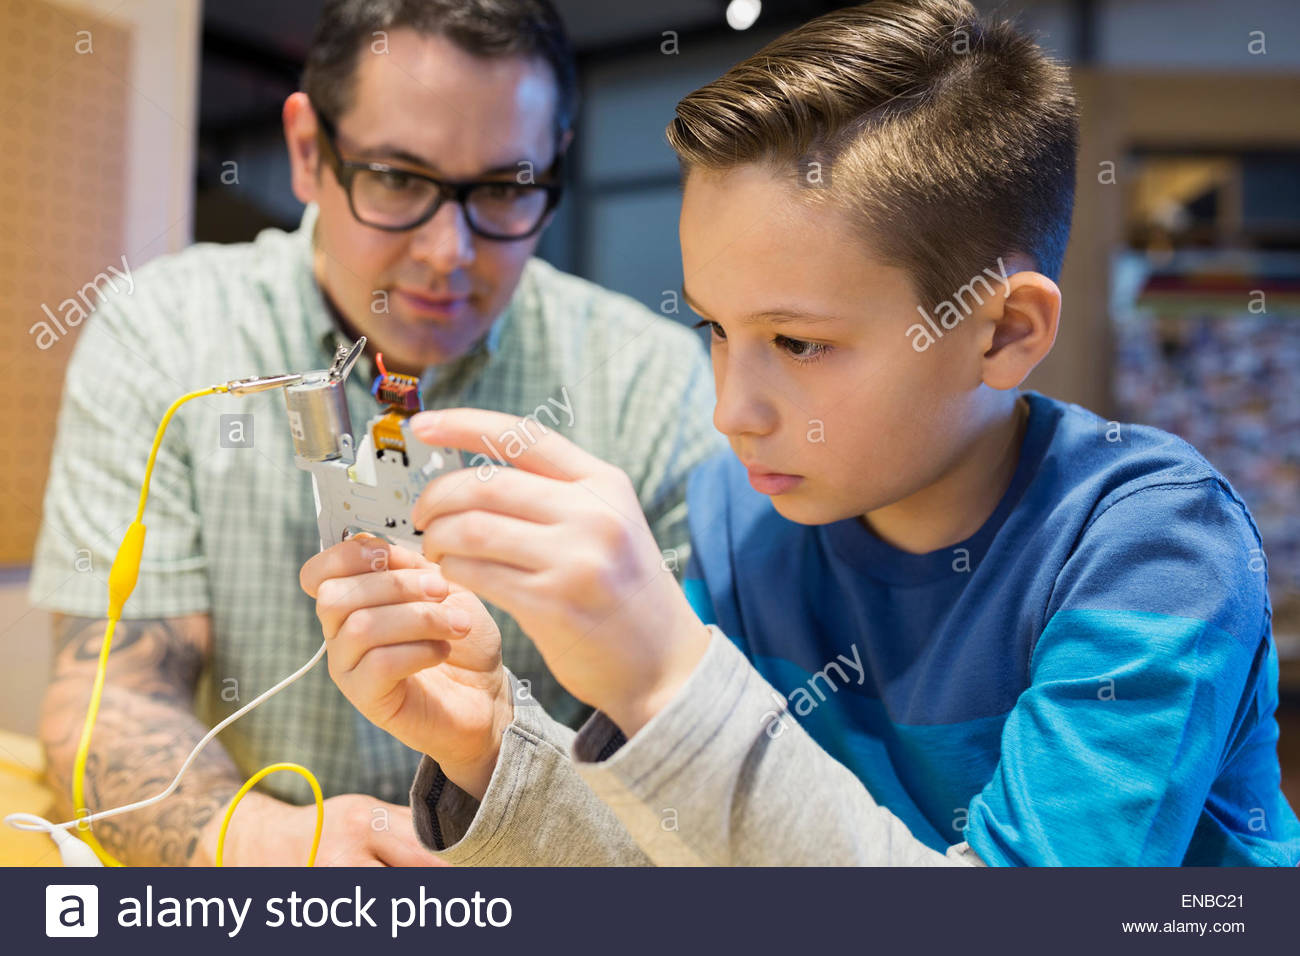 Teacher and student assembling electronic circuit science center Stock Photo